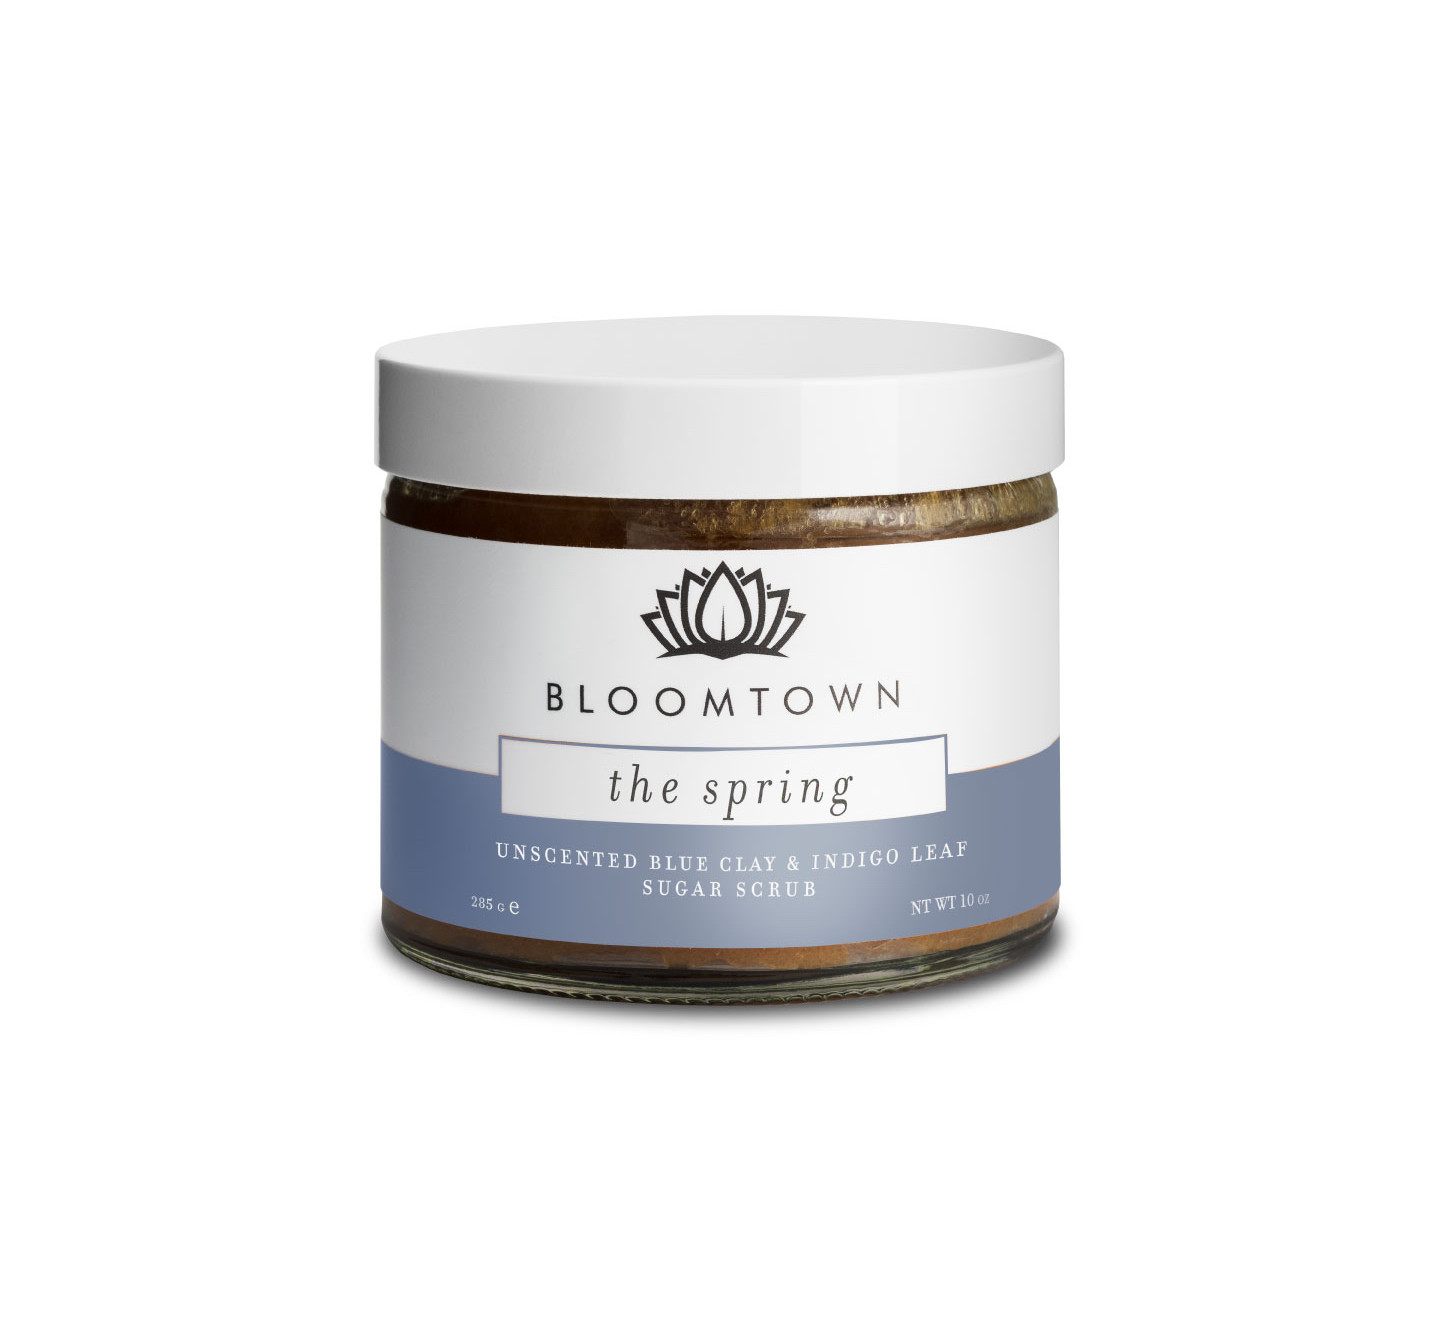 Bloomtown ('The Spring') Unscented Blue Clay and Indigo Leaf Sugar Scrub